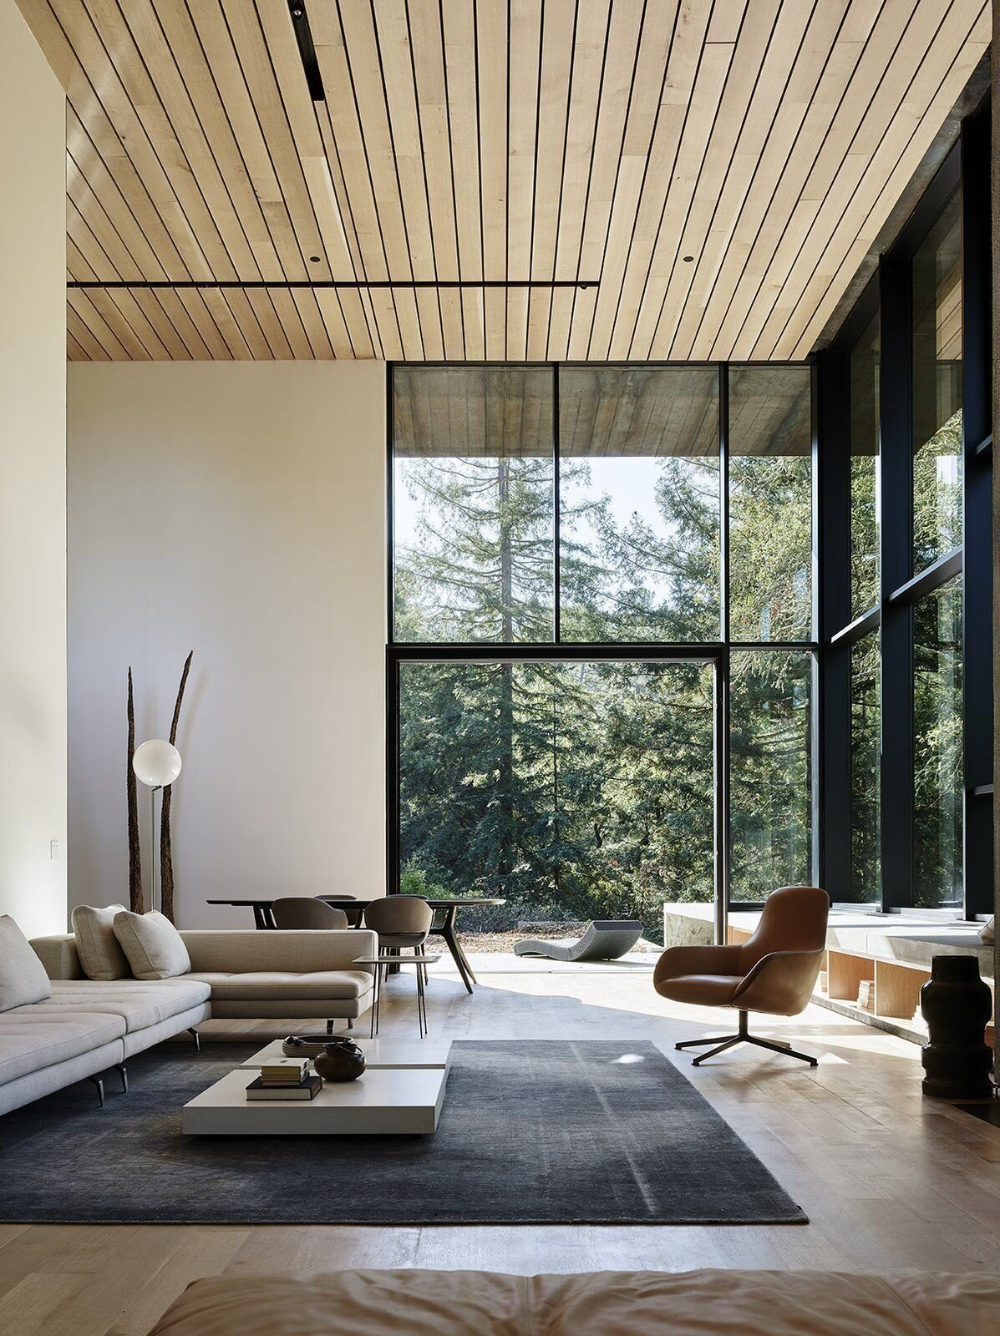 TIPS FOR MIXING WOOD TONES IN YOUR HOME